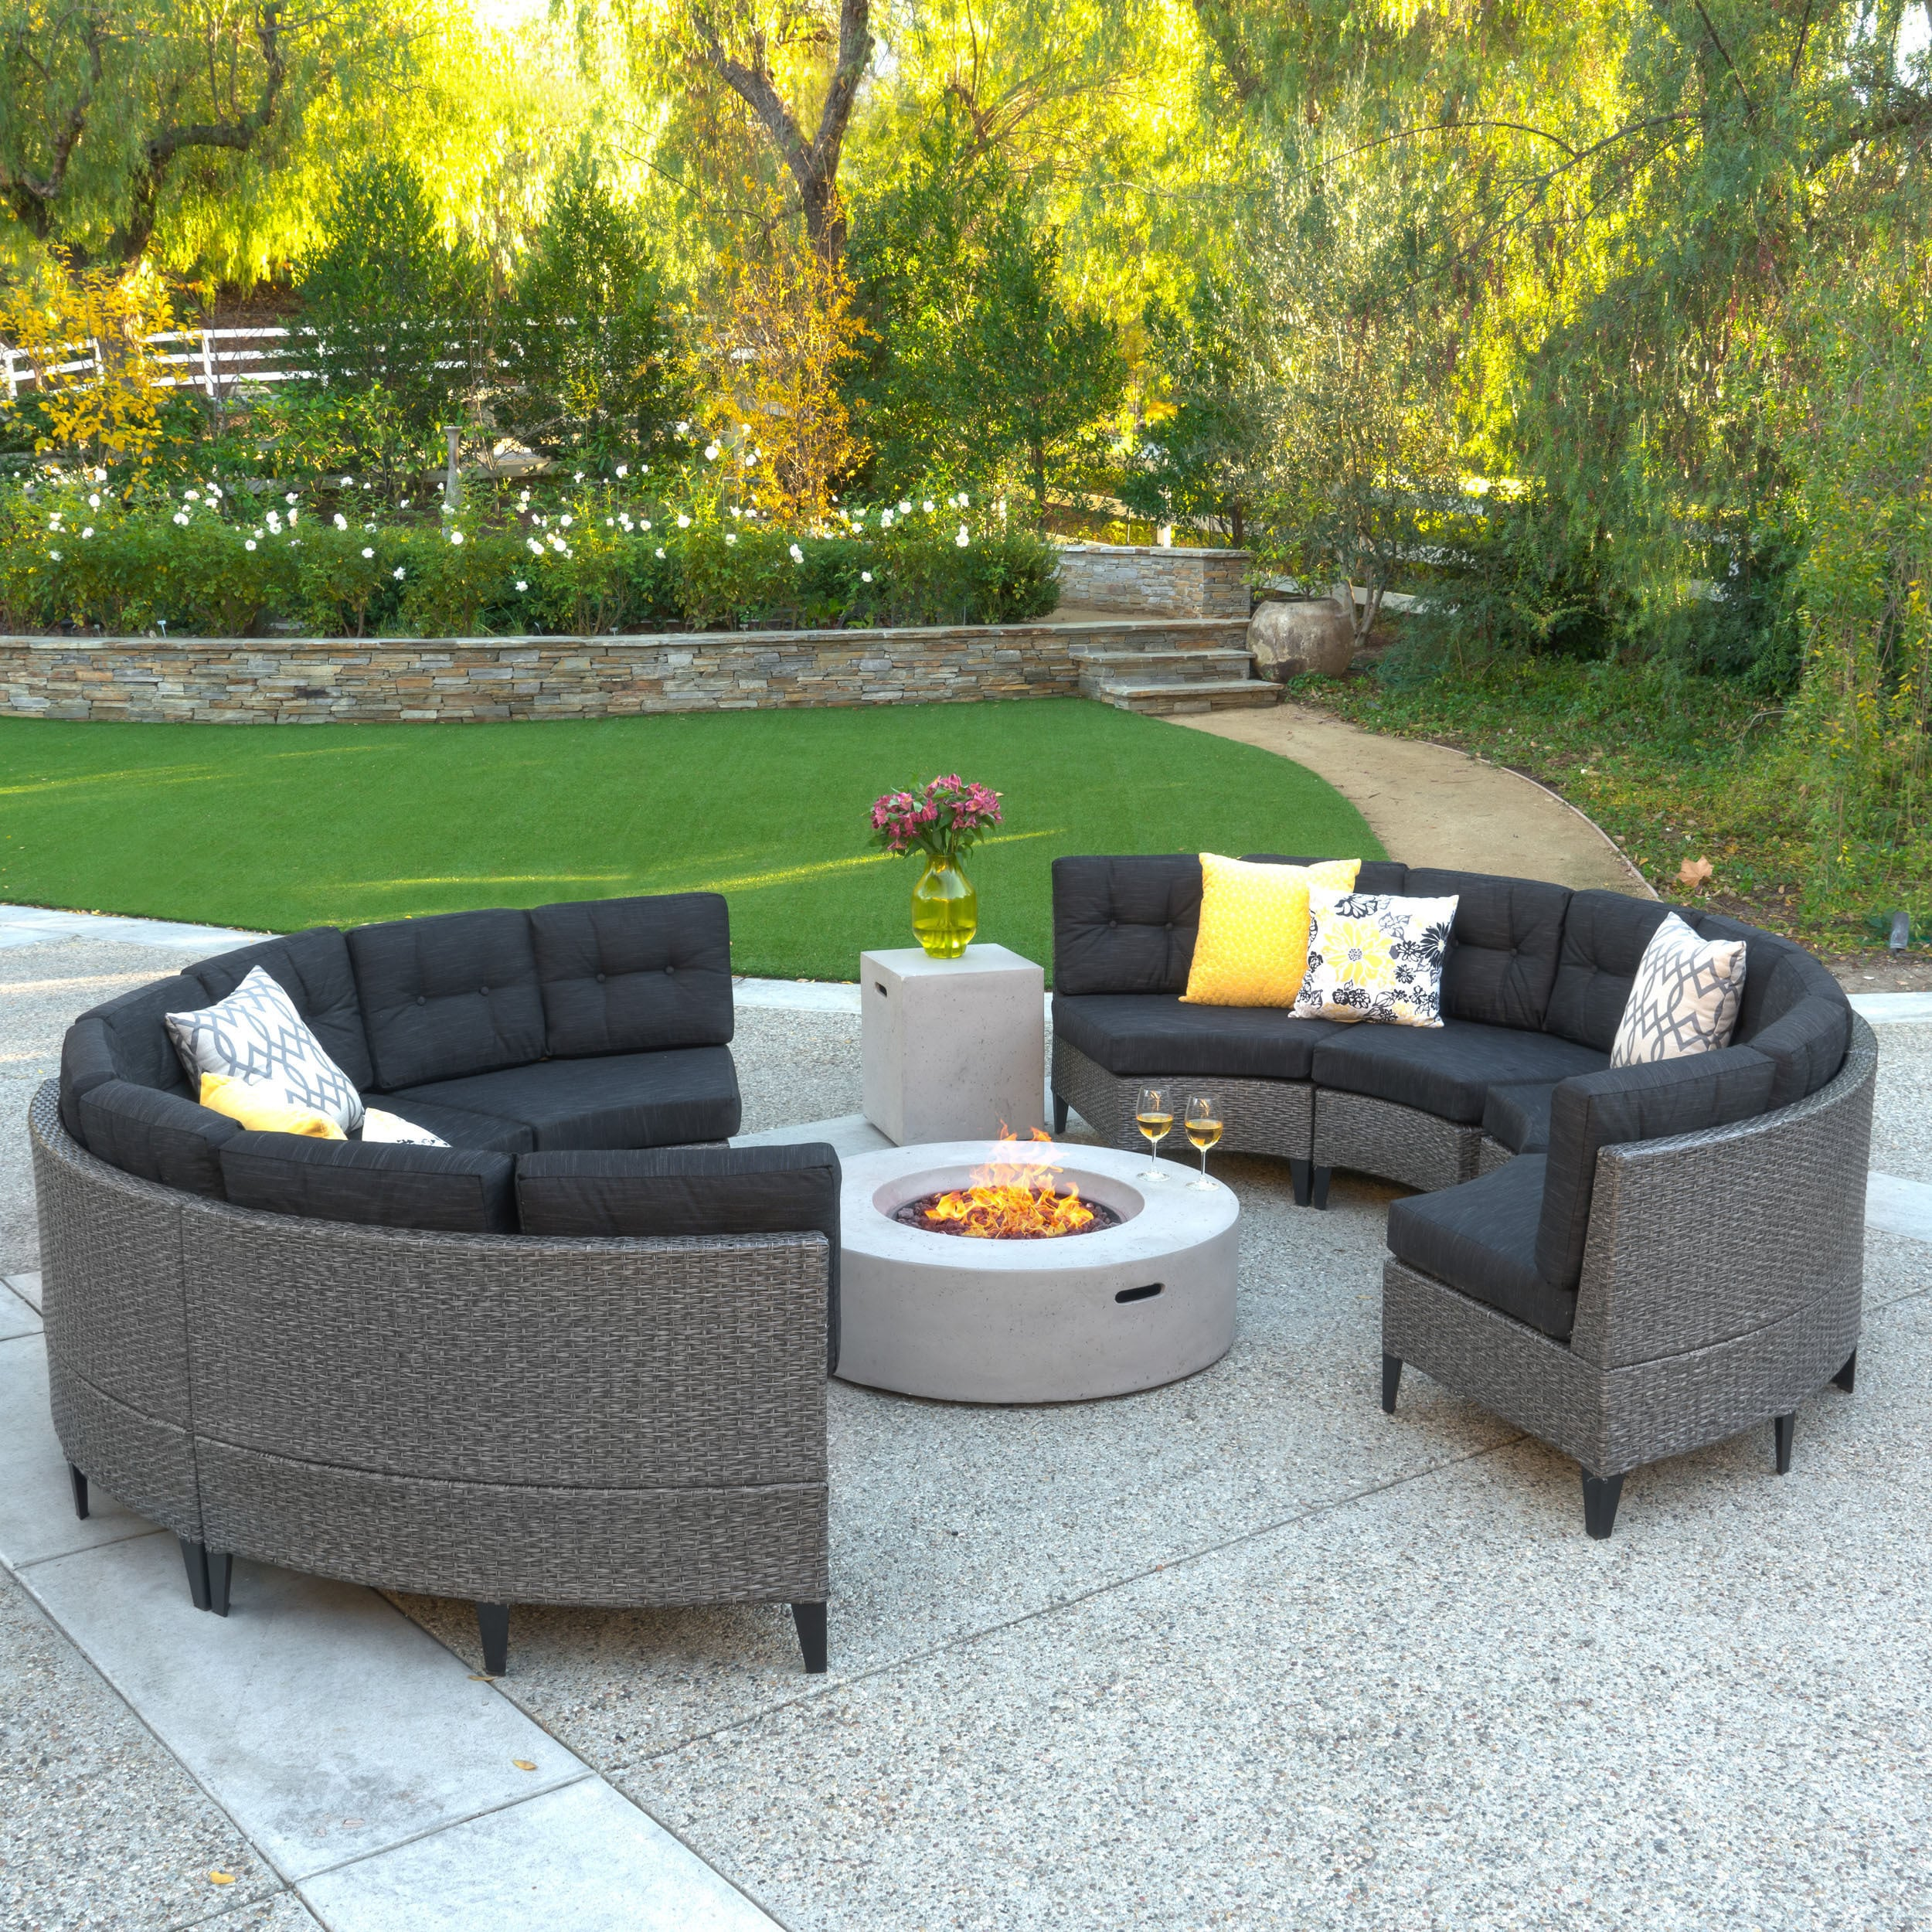 Navagio Outdoor 10 Piece Wicker Full Round Sofa Set With Fire Table By Christopher Knight Home On Sale Overstock 14009608